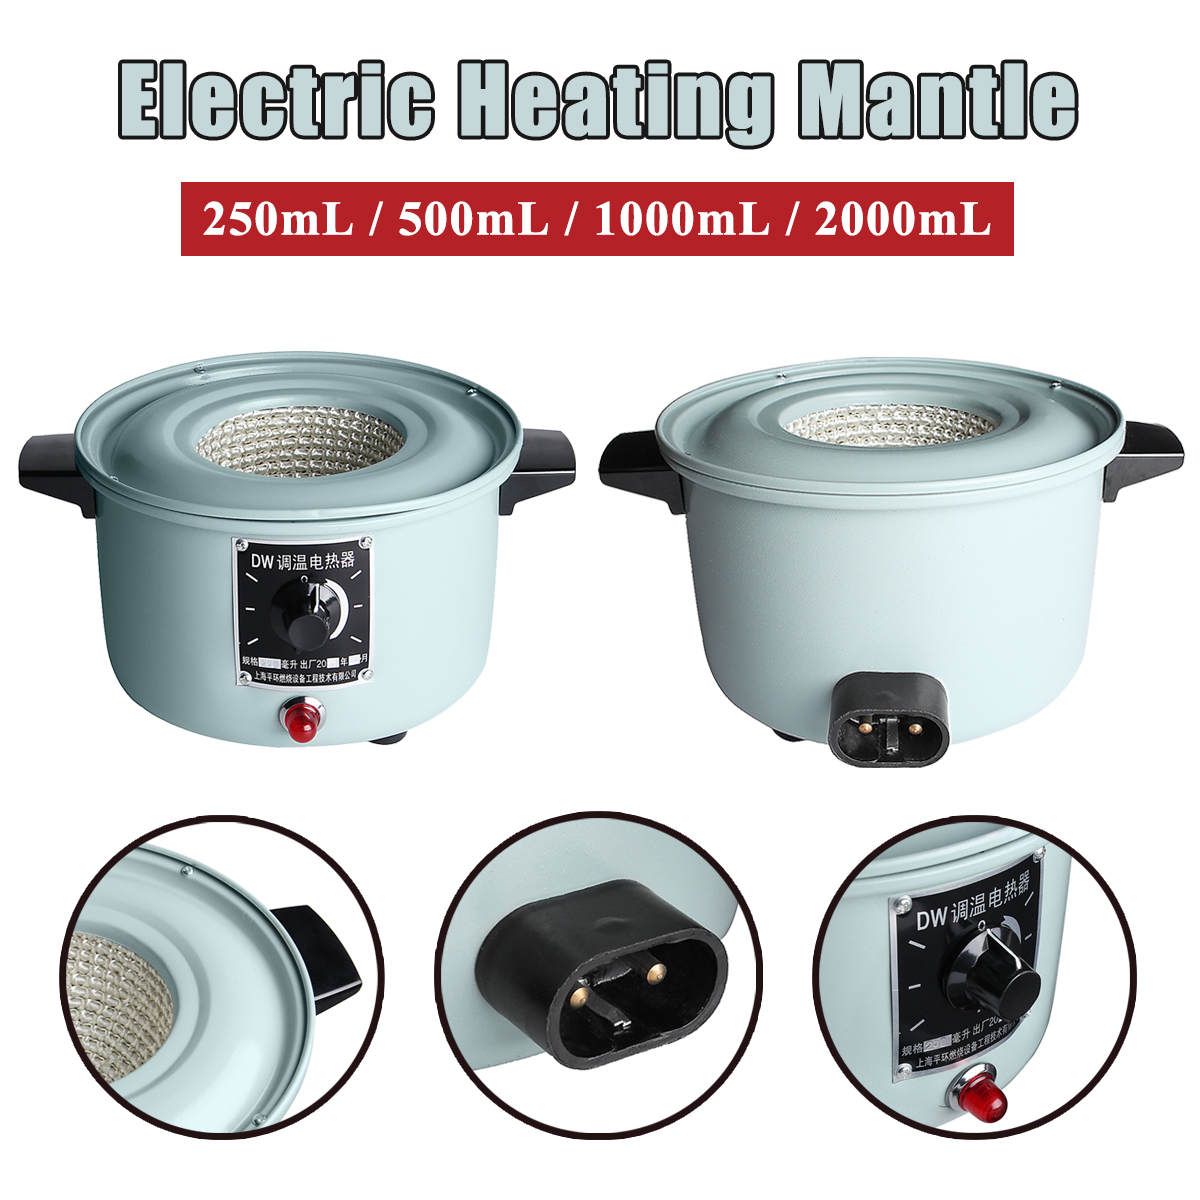 250/500/1000/2000mL 220V Lab Flask Electric Heating Mantle With Thermal Regulator Adjustable Equip For Flask Lab 1pc lot 50 60 125 250 500 1000 2000ml quartz glass distillation flask with round bottom for kinds of lab experiments